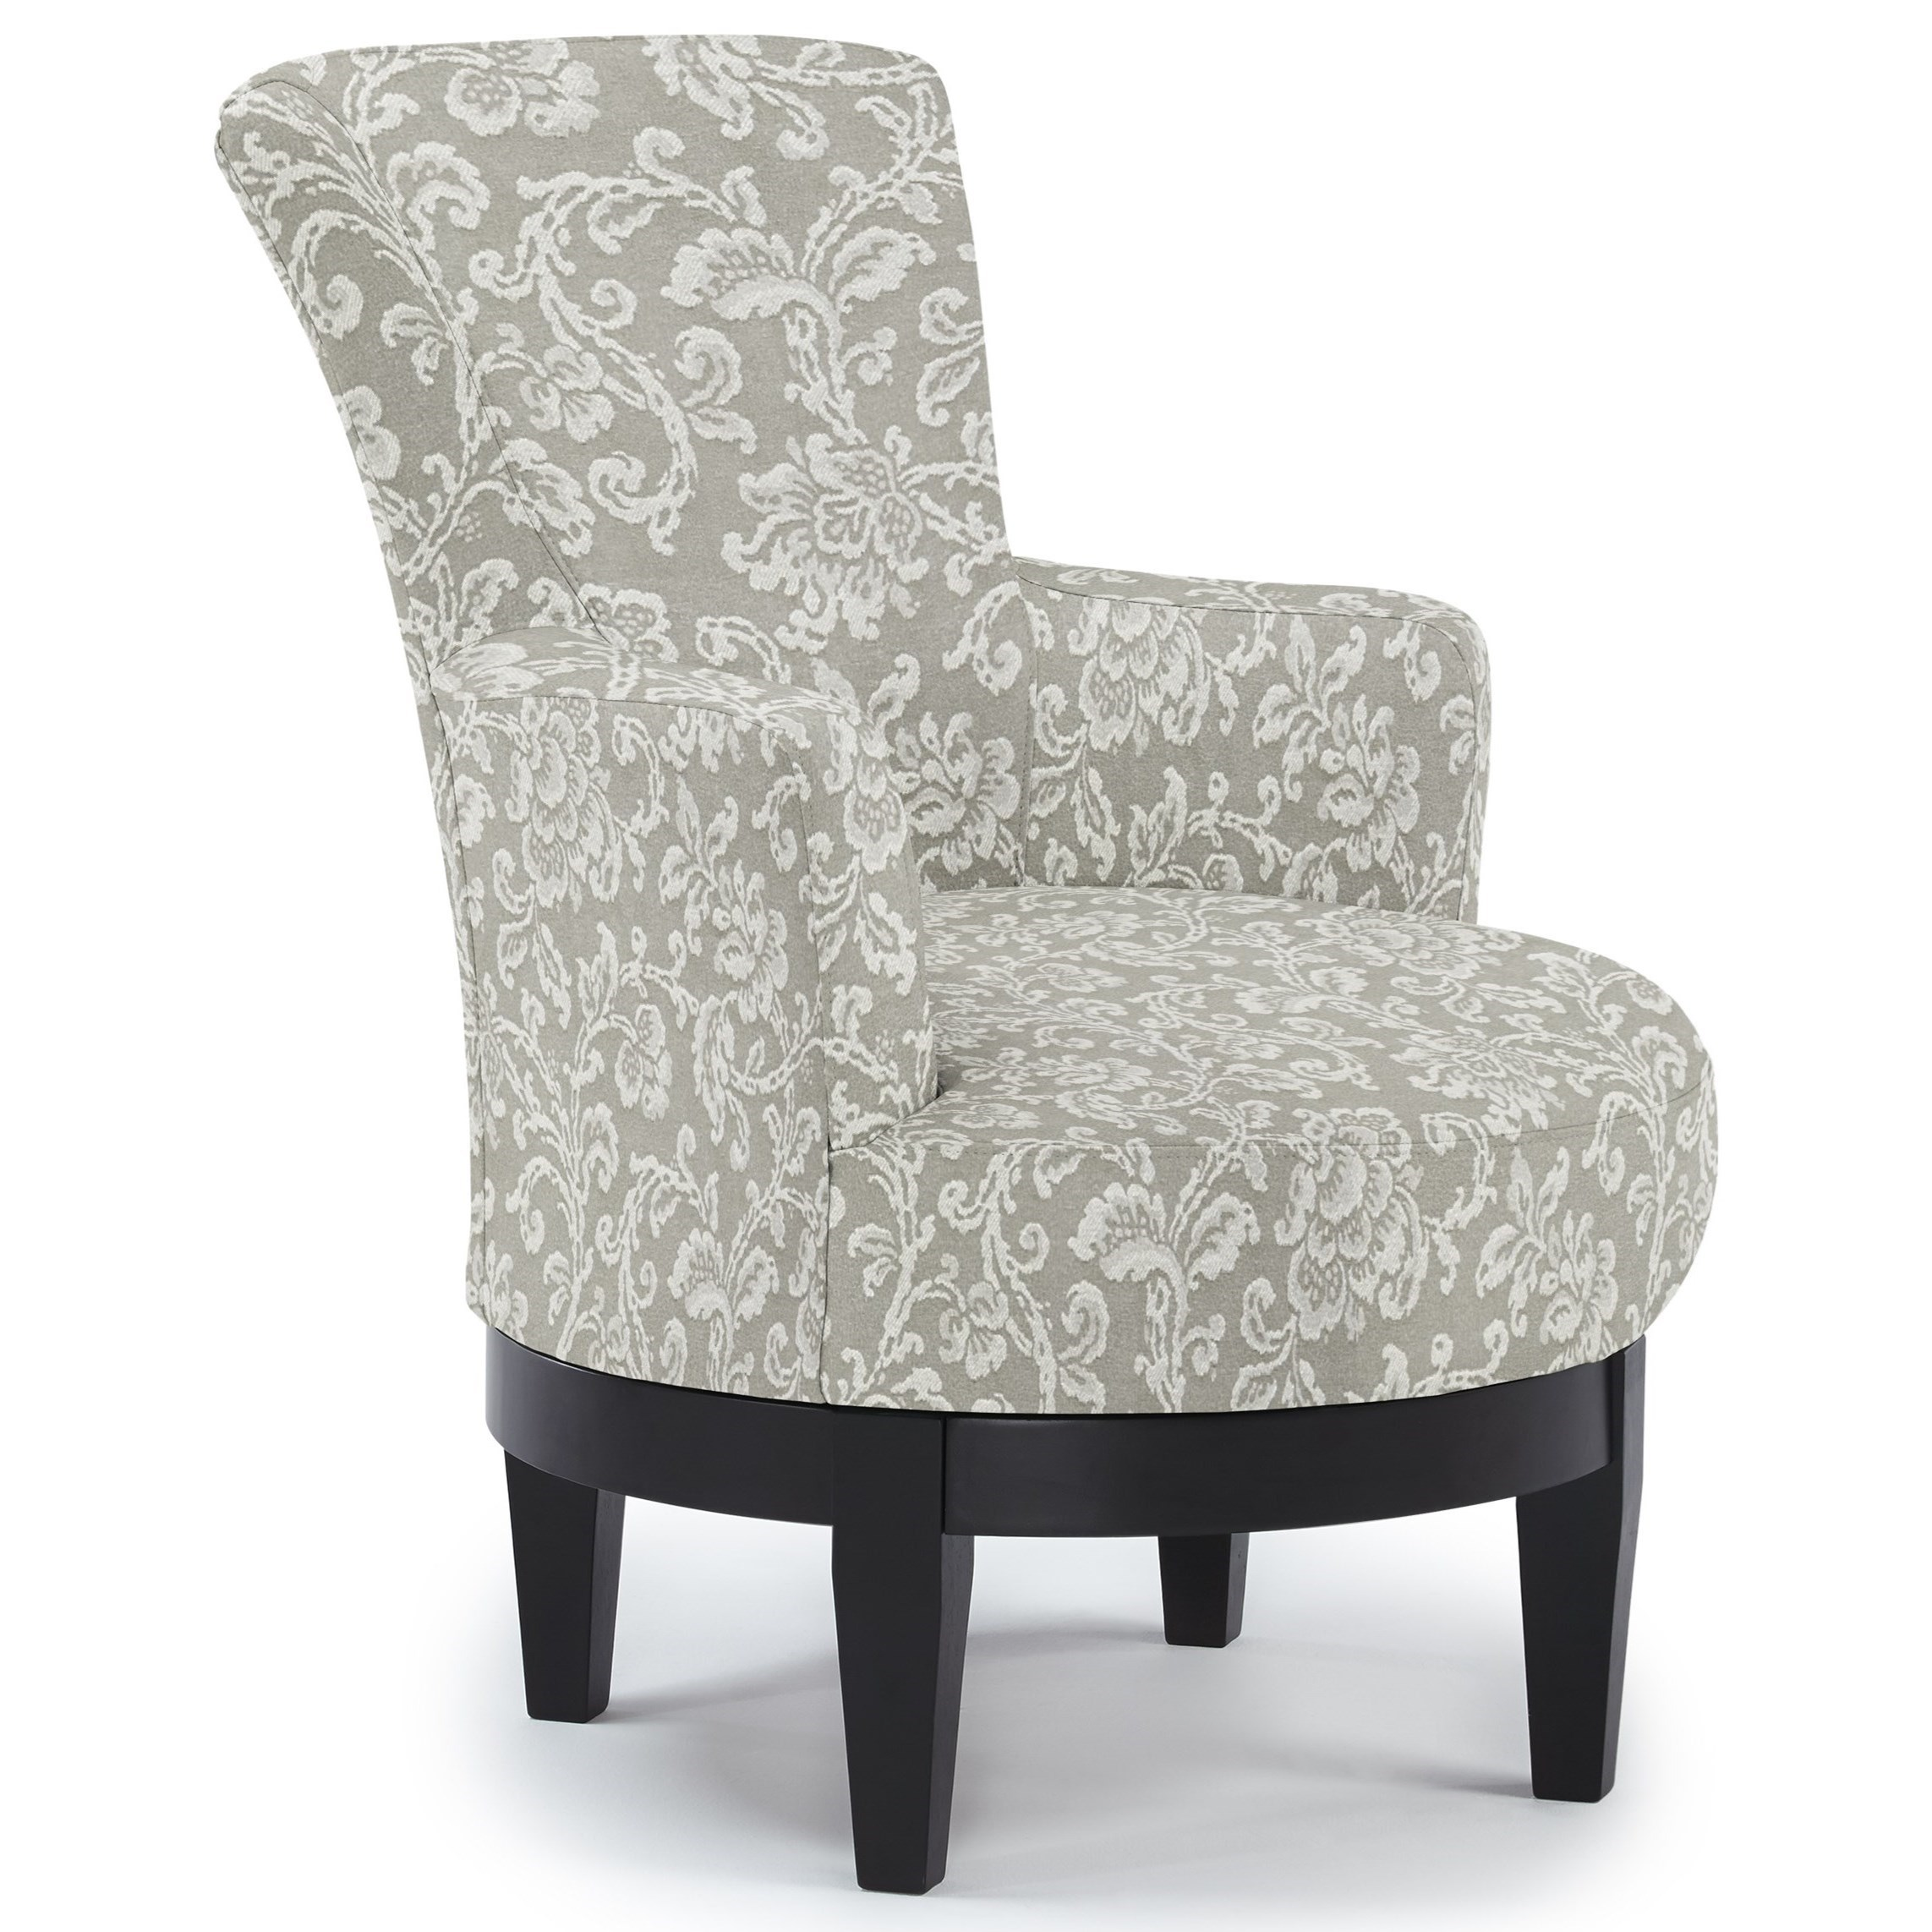 Best Home Furnishings Chairs - Swivel Barrel Swivel Chair - Item Number: 2968-28889